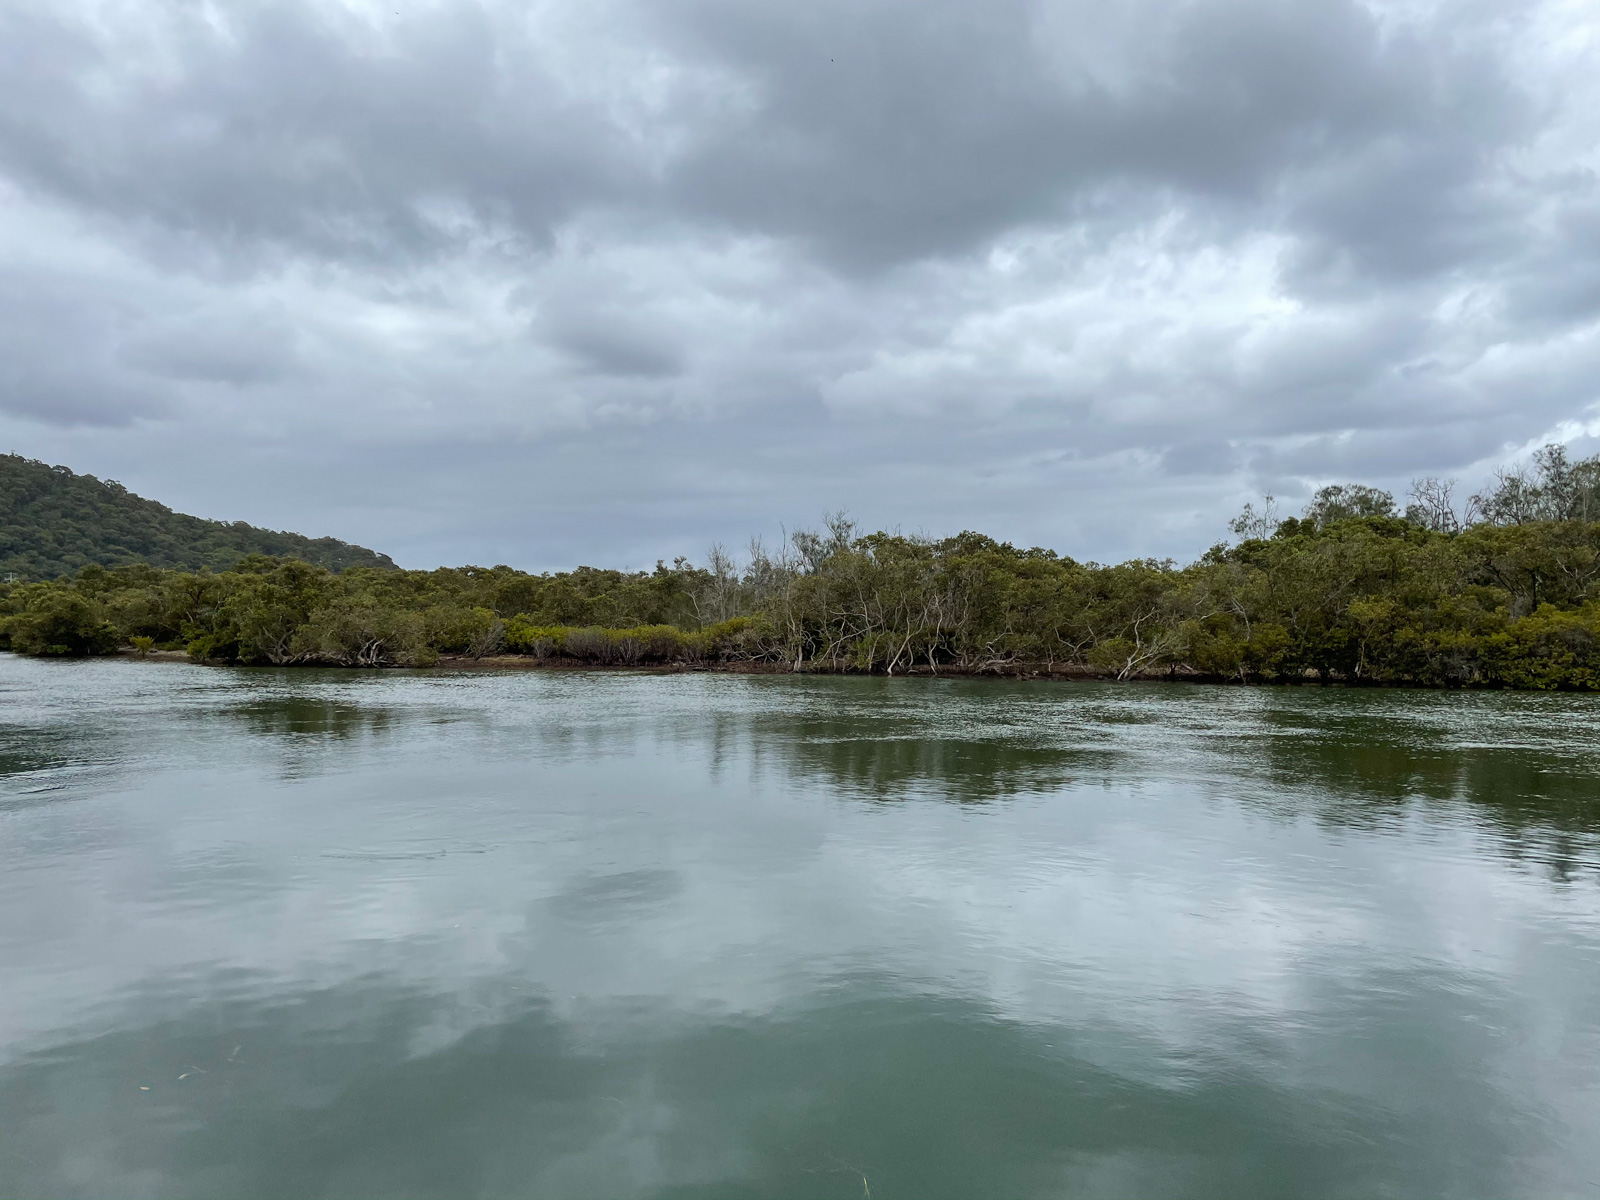 A view of a dark aqua lake with some trees on the land in the background. The sky is quite grey and cloudy, but not dark